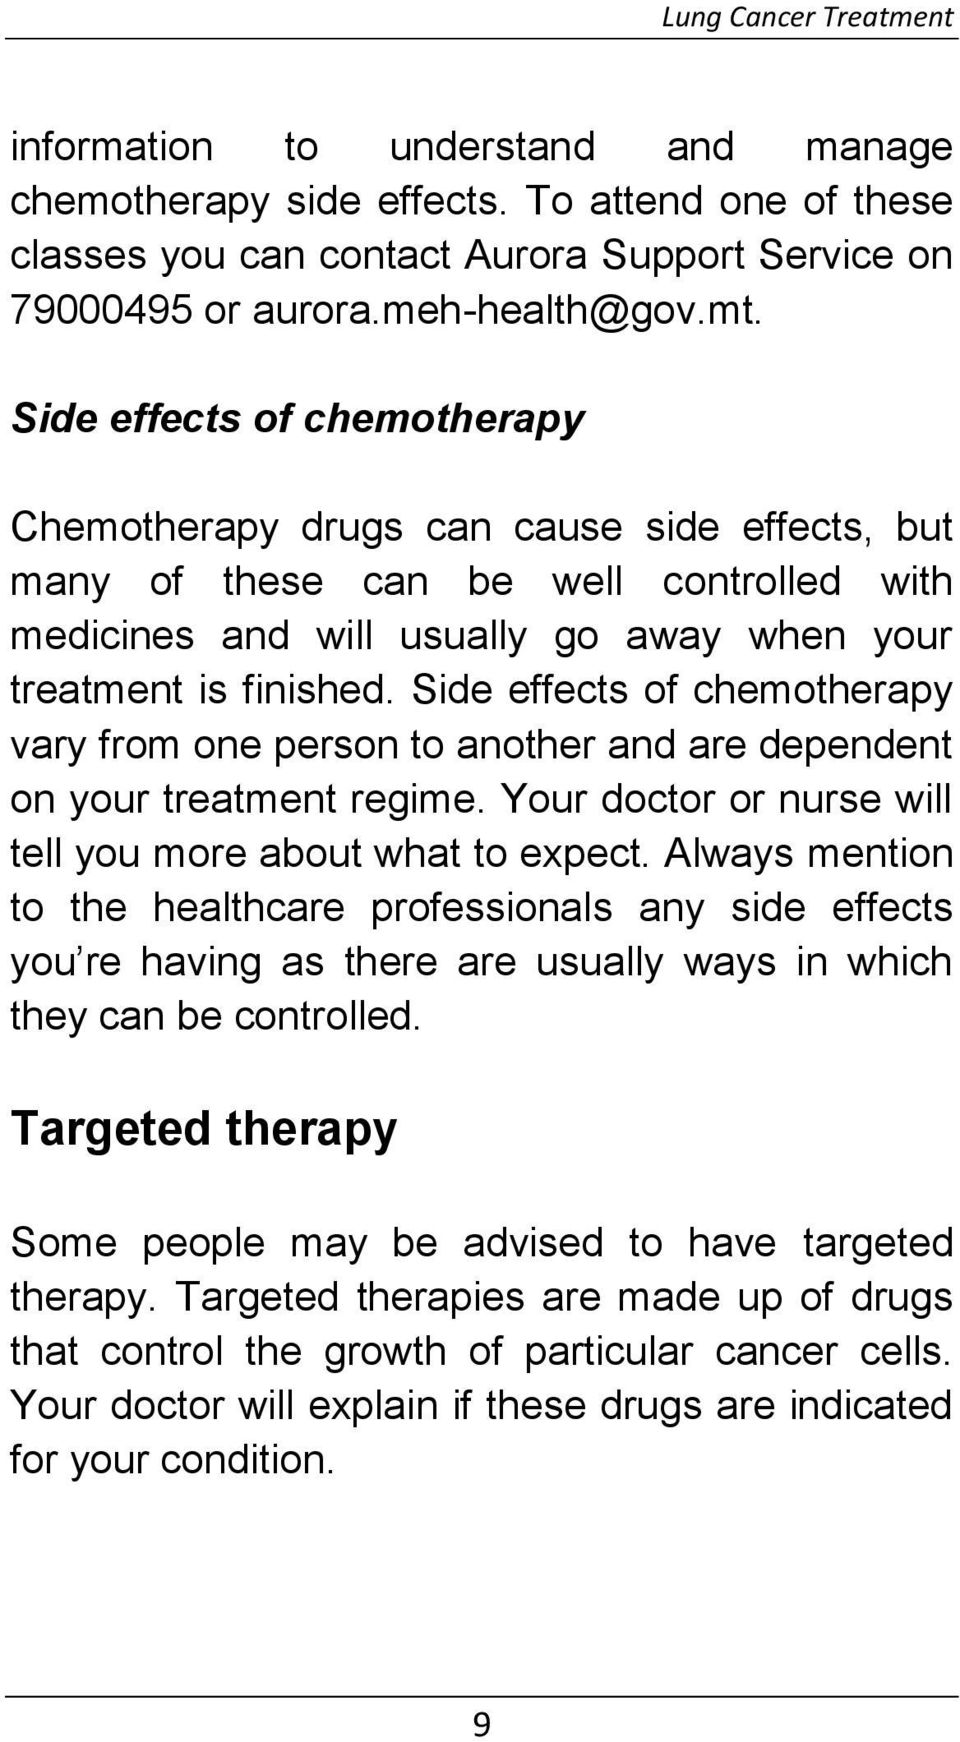 Side effects of chemotherapy vary from one person to another and are dependent on your treatment regime. Your doctor or nurse will tell you more about what to expect.